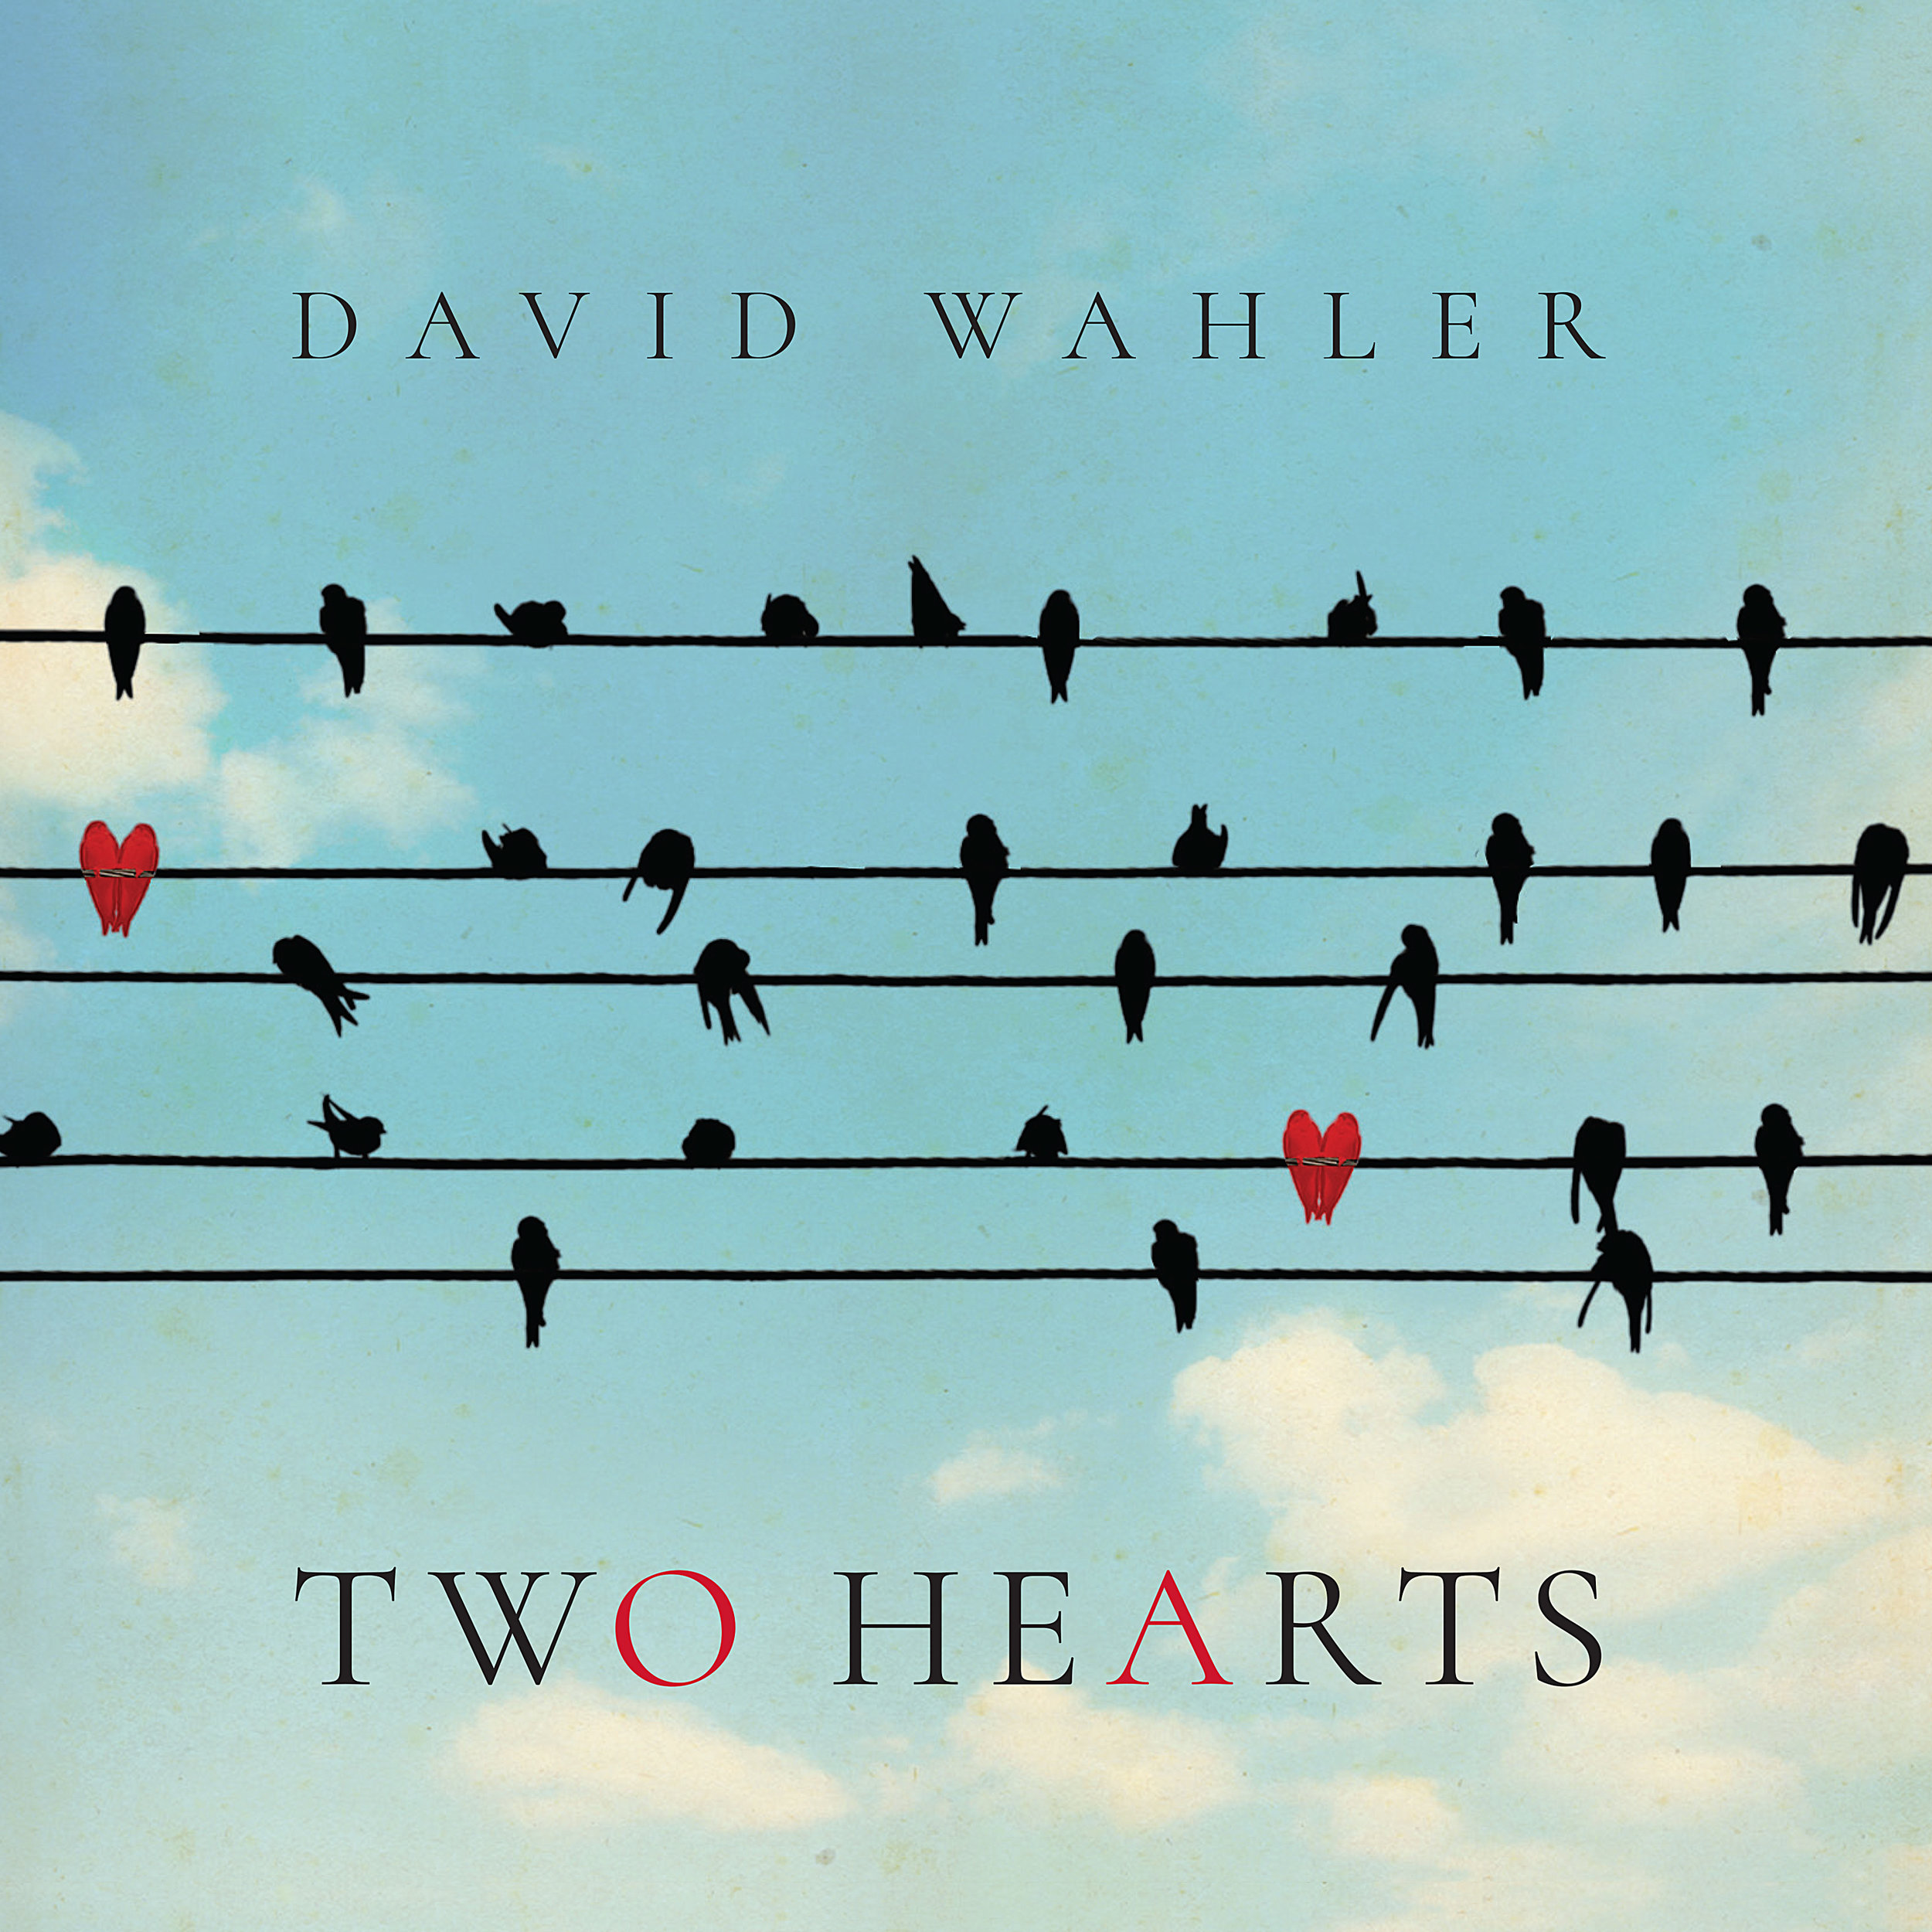 Two Hearts - Text here